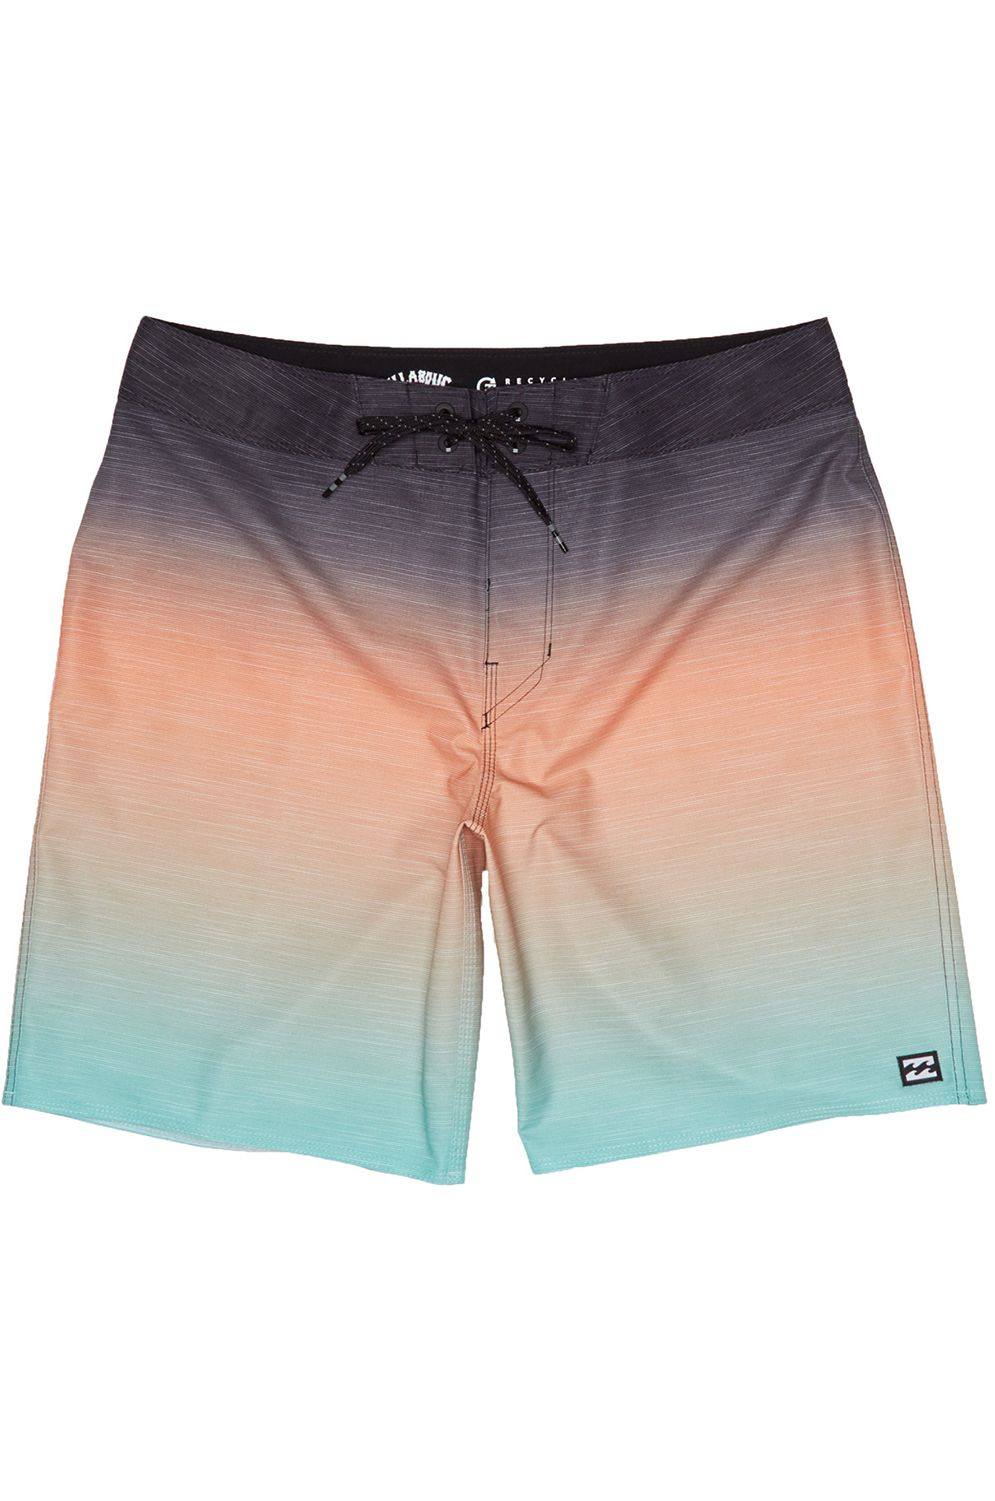 Boardshorts Billabong ALL DAY FADE PRO Mint